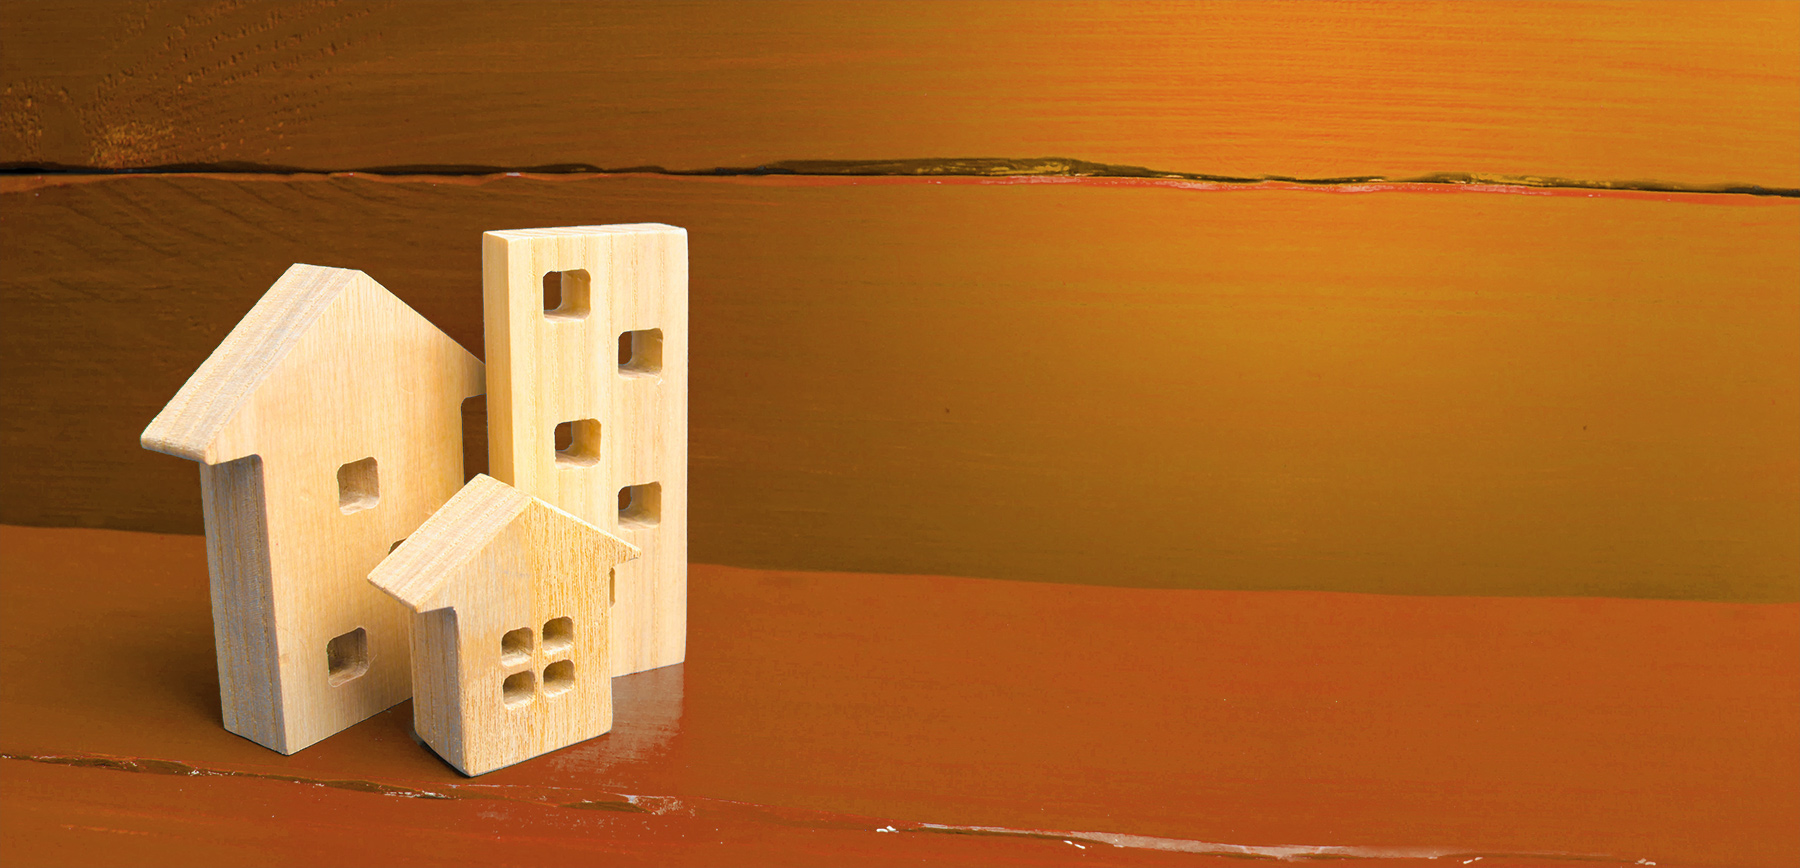 Wooden blocks in the shape of houses